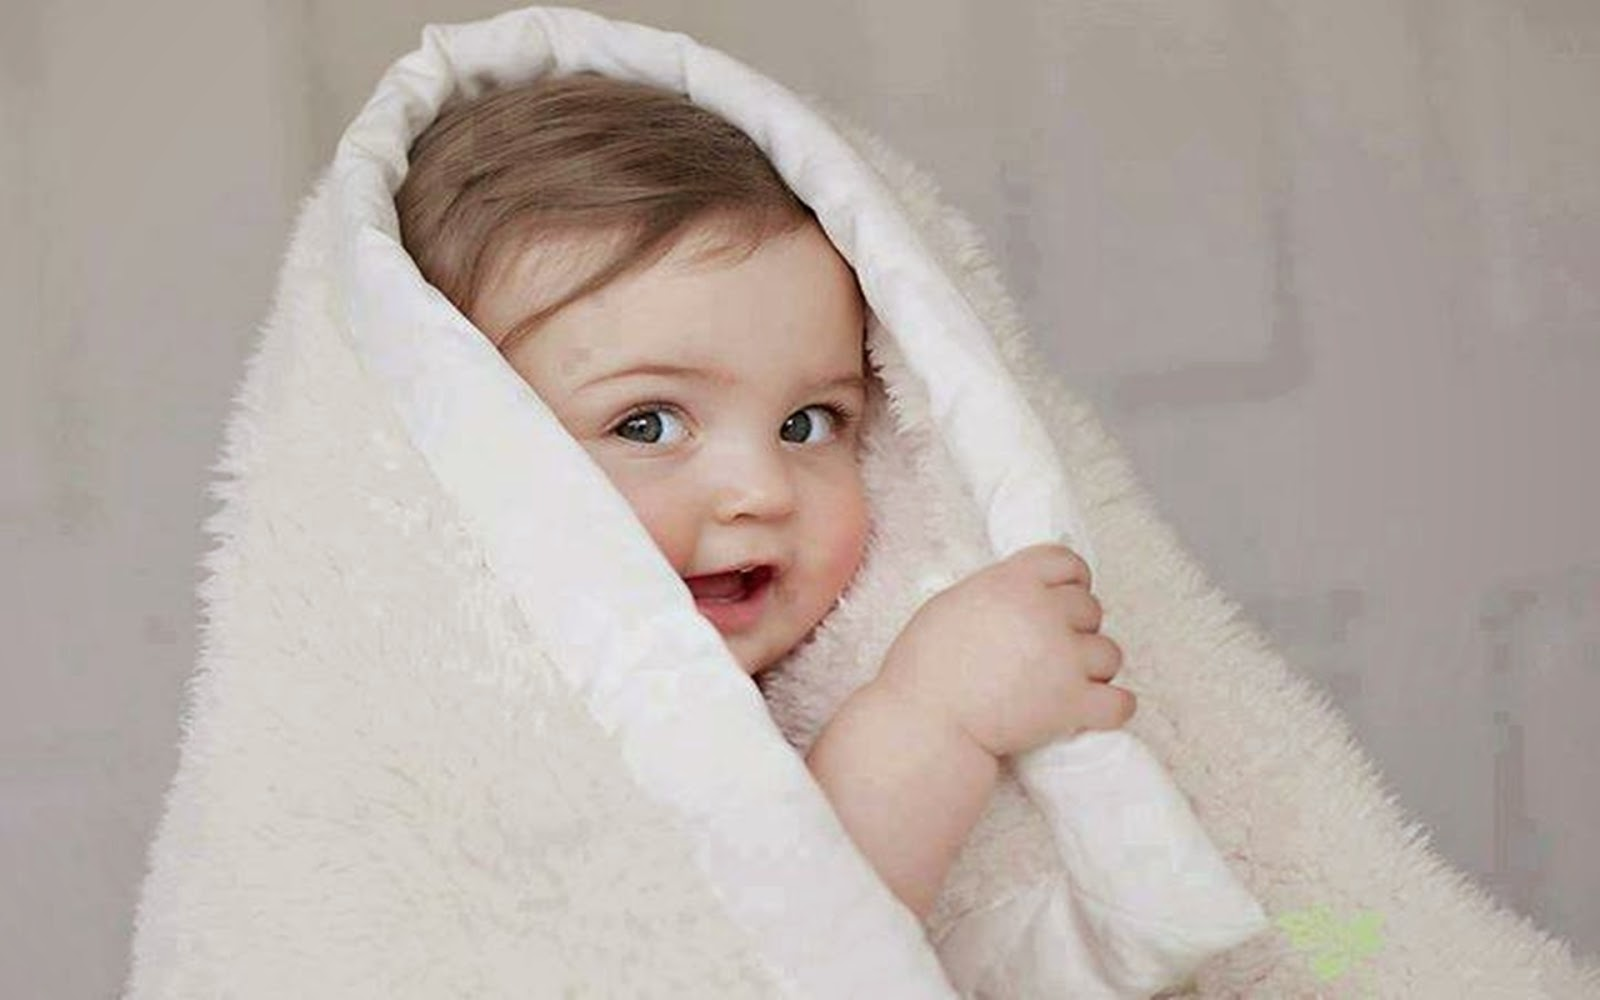 World Cutest Baby wallpapers 2014 Charming collection of 1600x1000